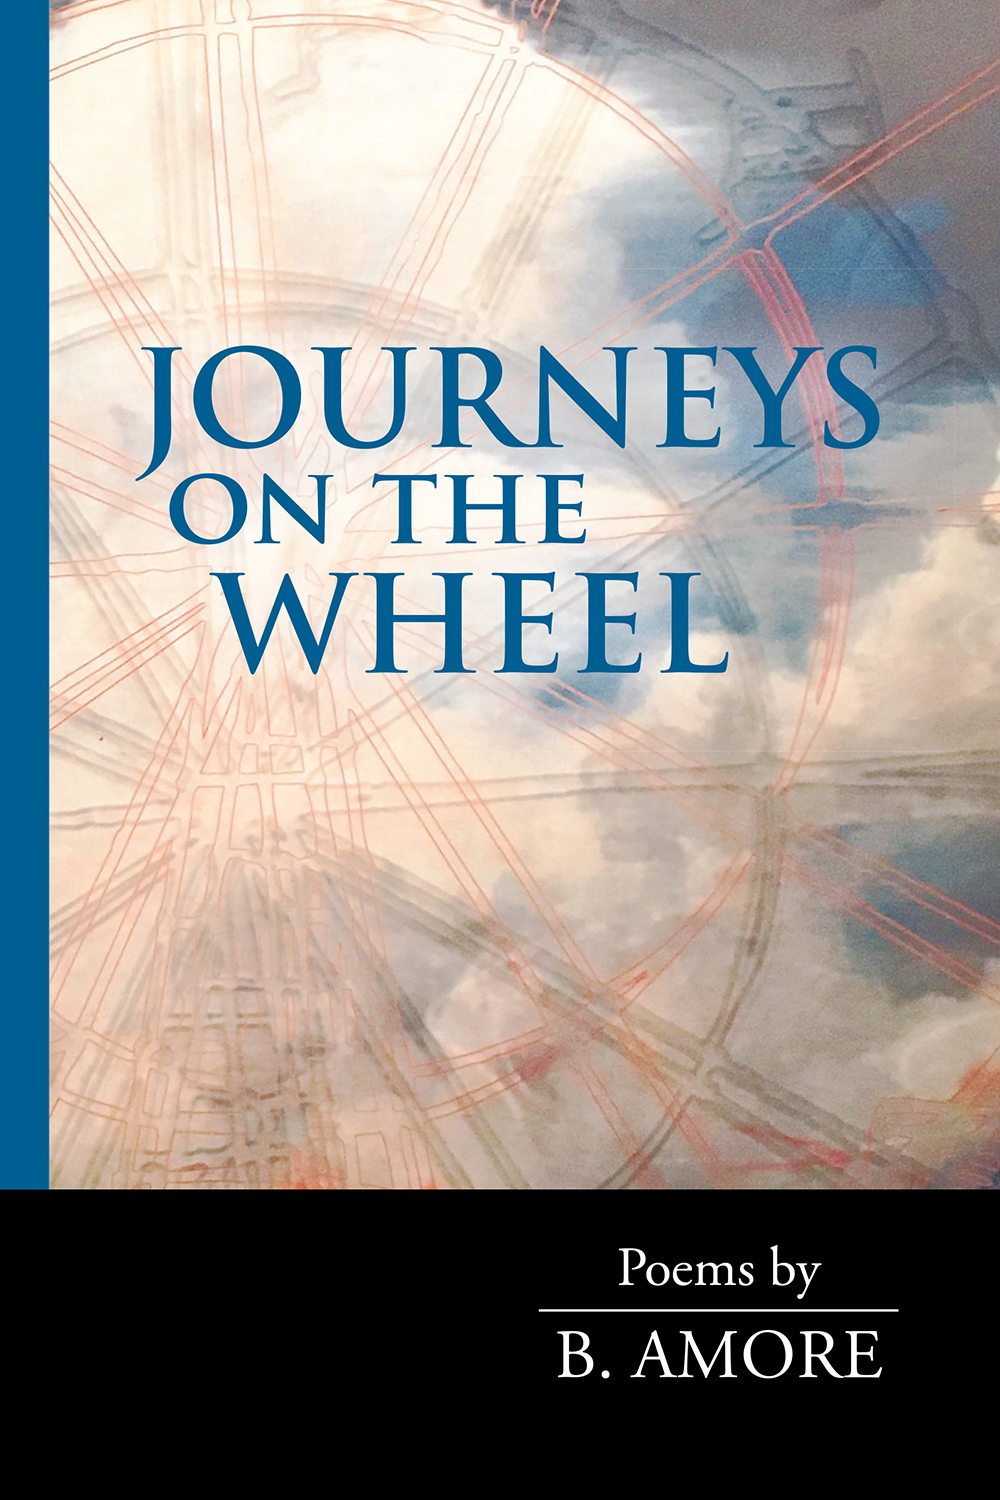 Journeys on the Wheel